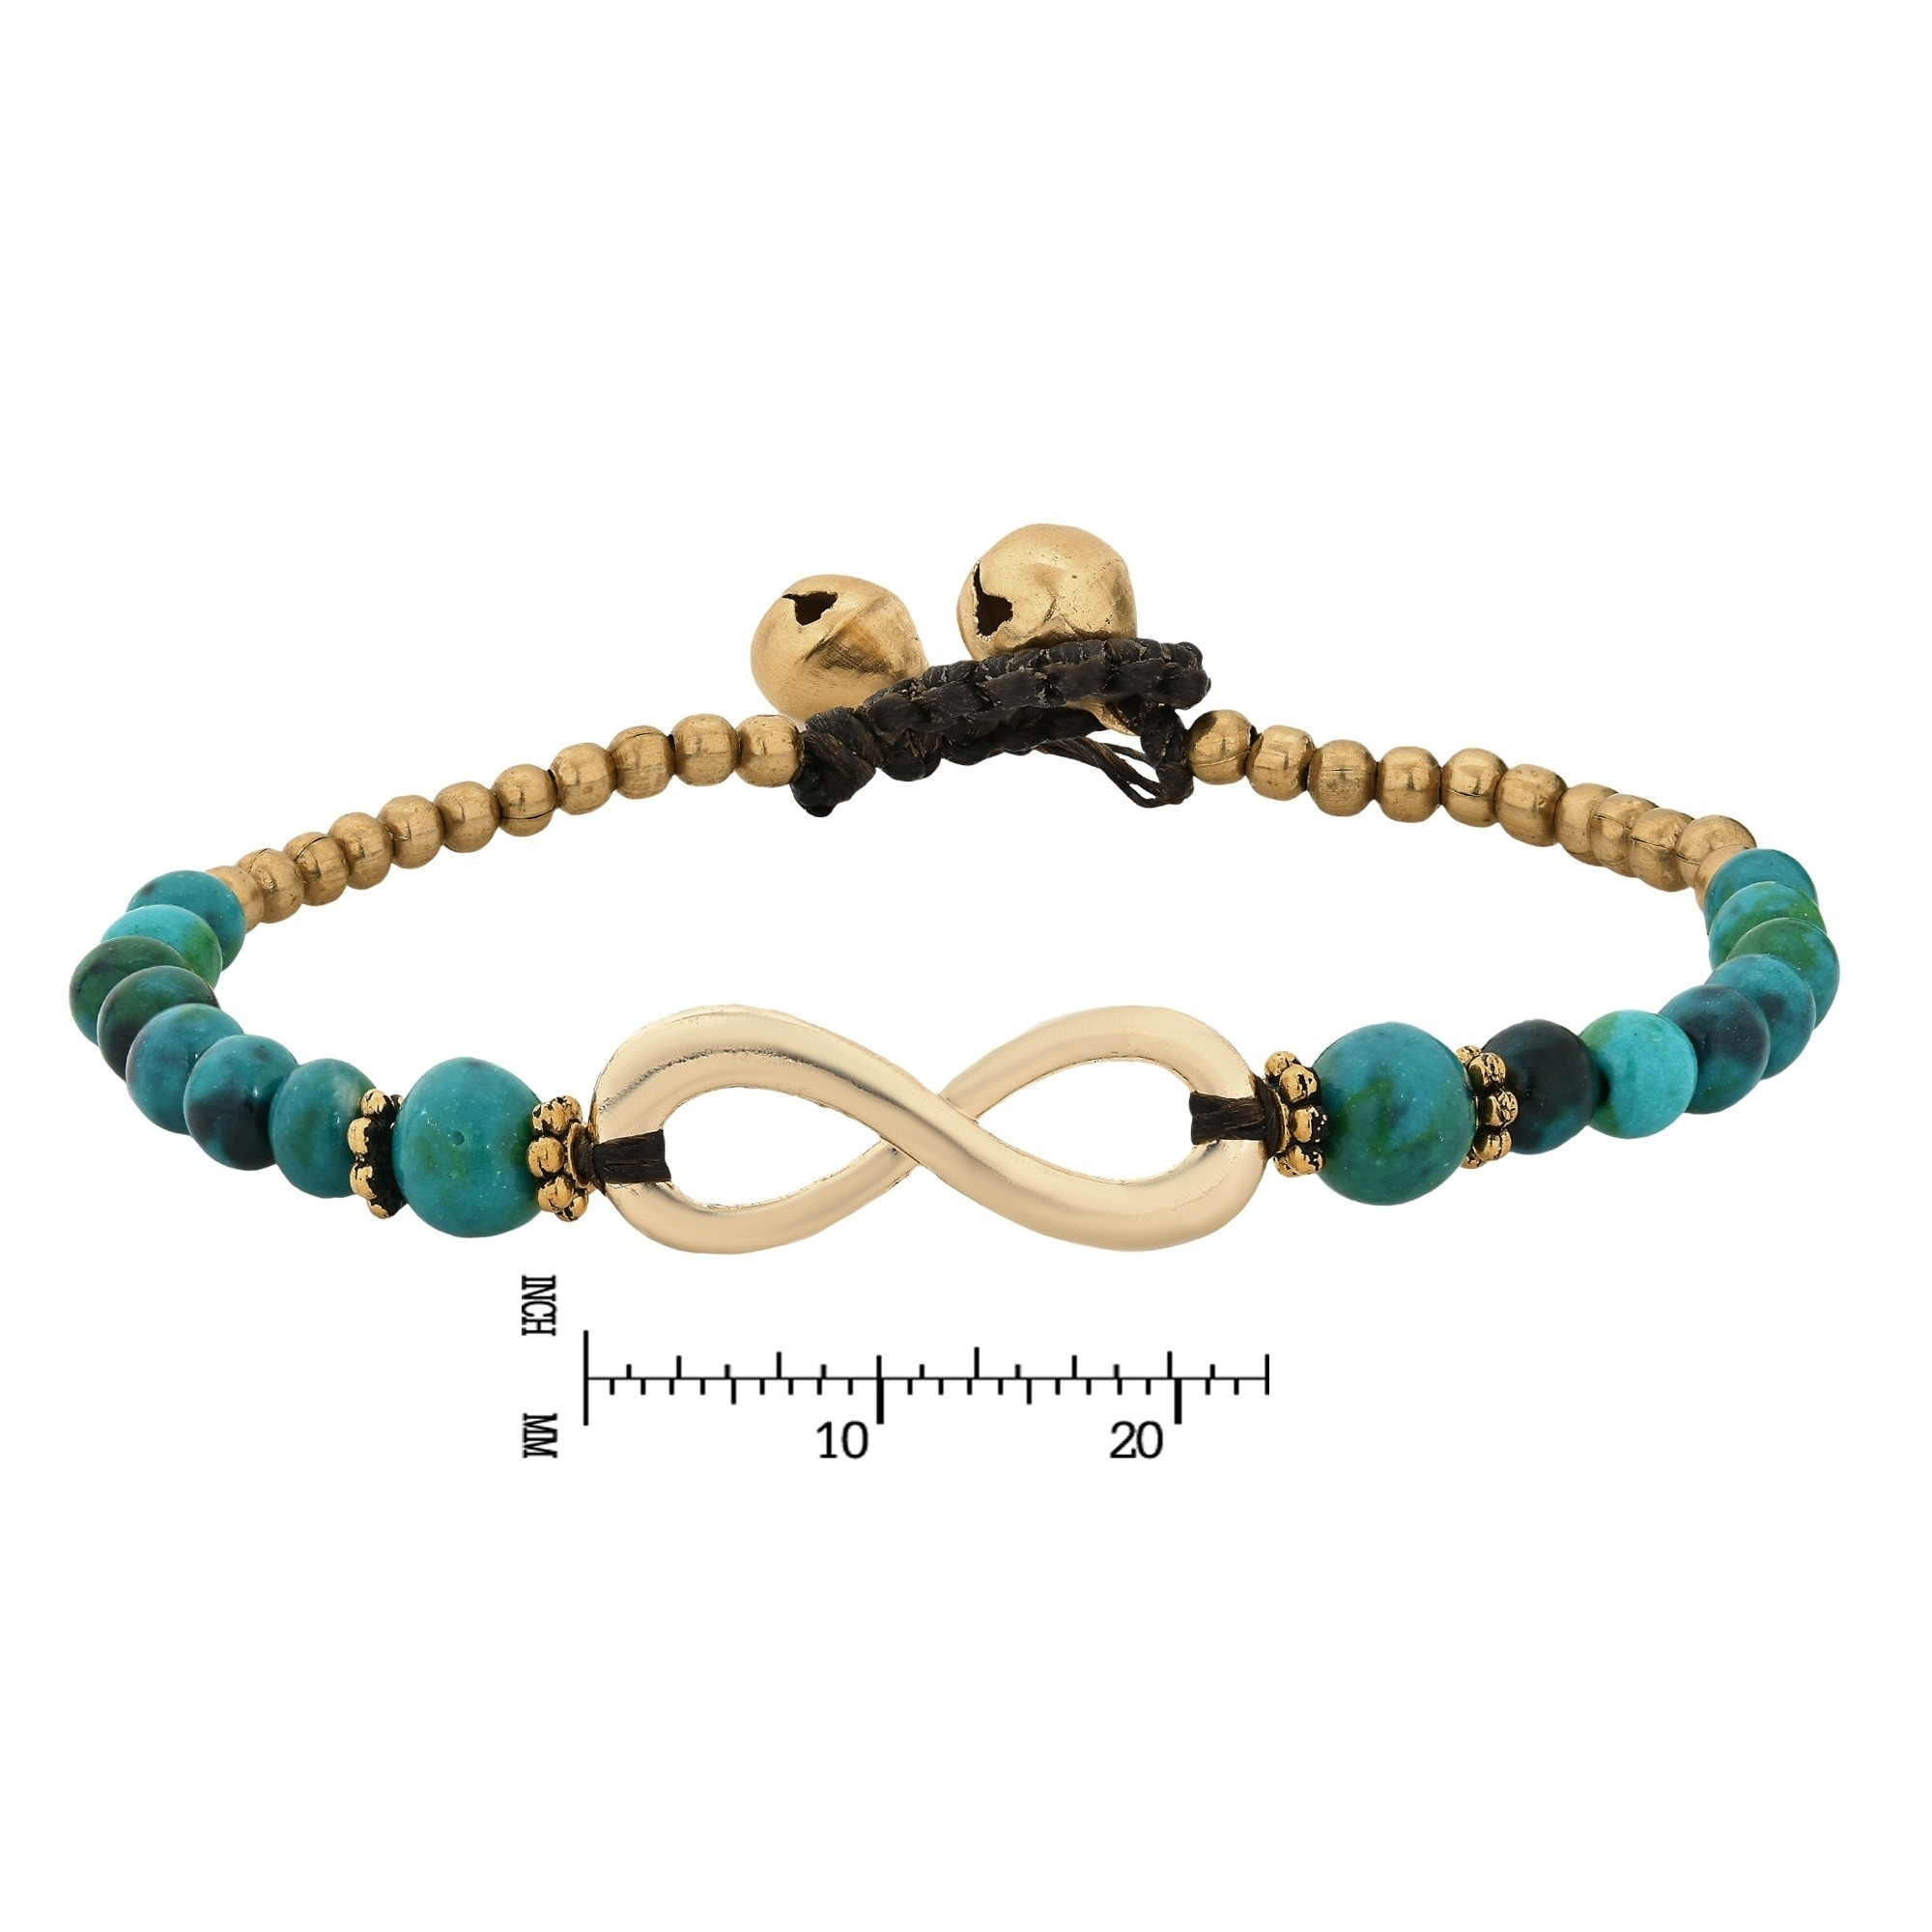 bali cubi sign gold jewellery joy peace products bracelet